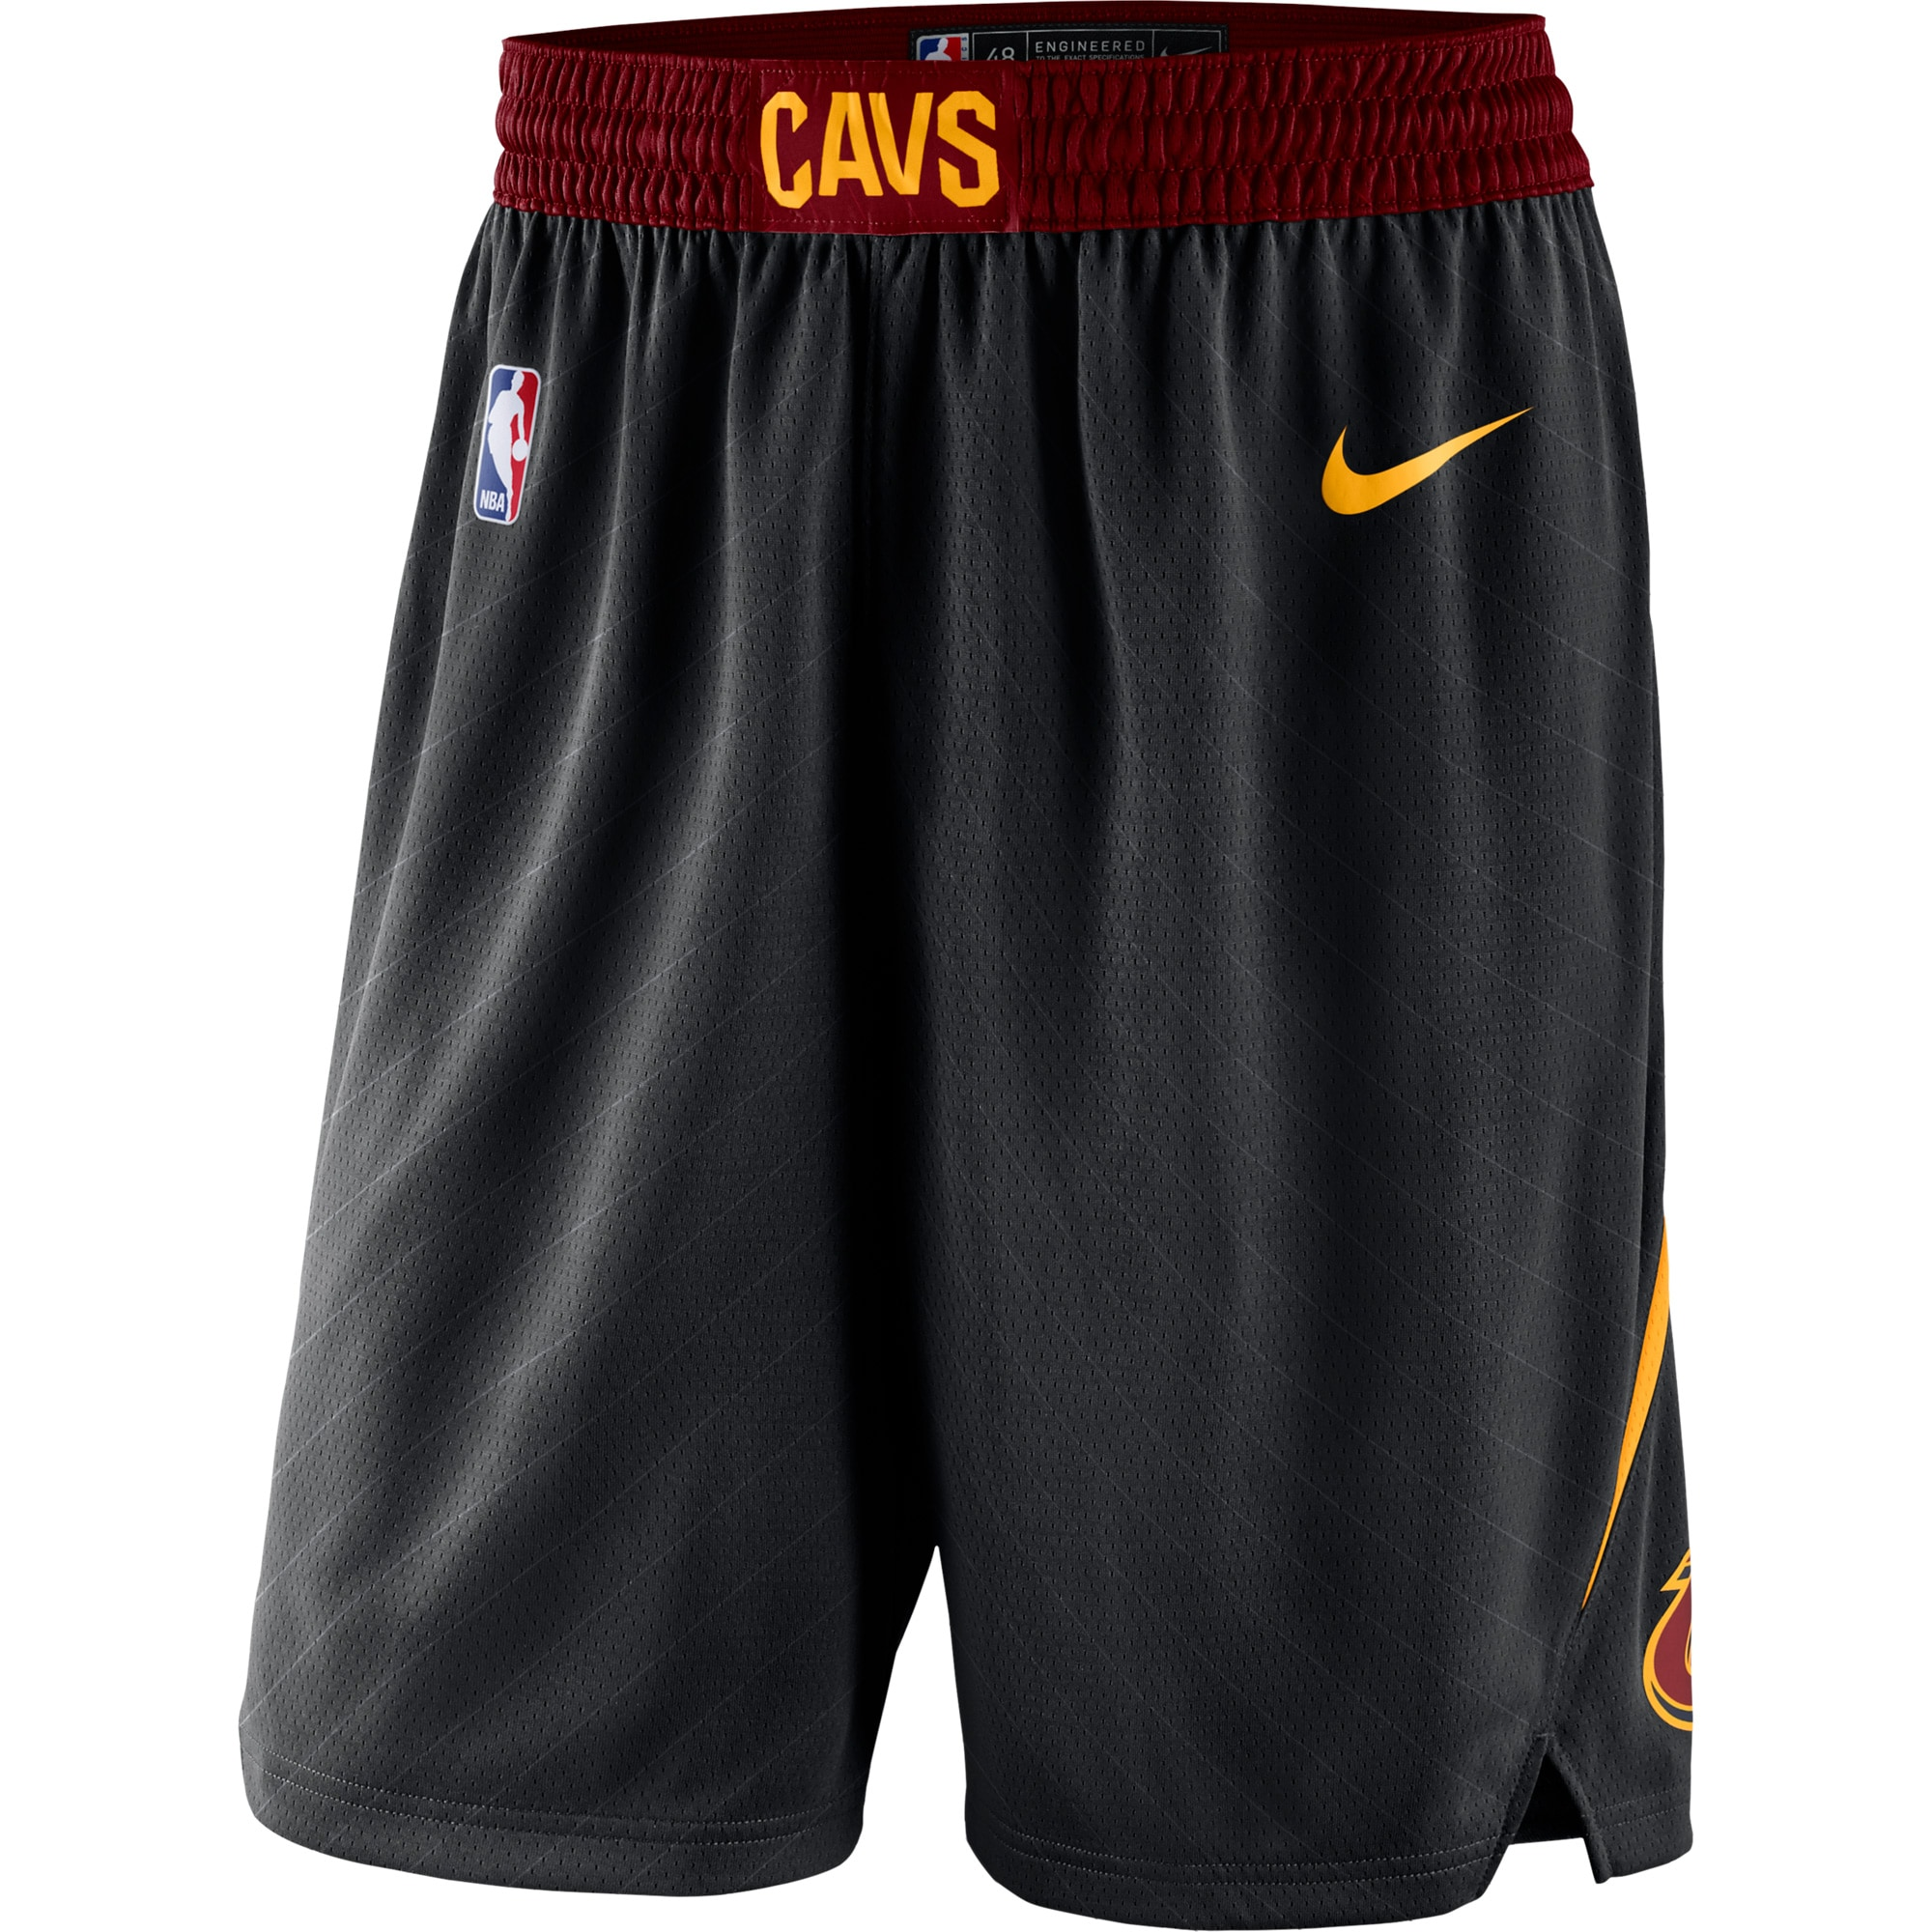 Cleveland Cavaliers Nike Statement Swingman Basketball Shorts - Black